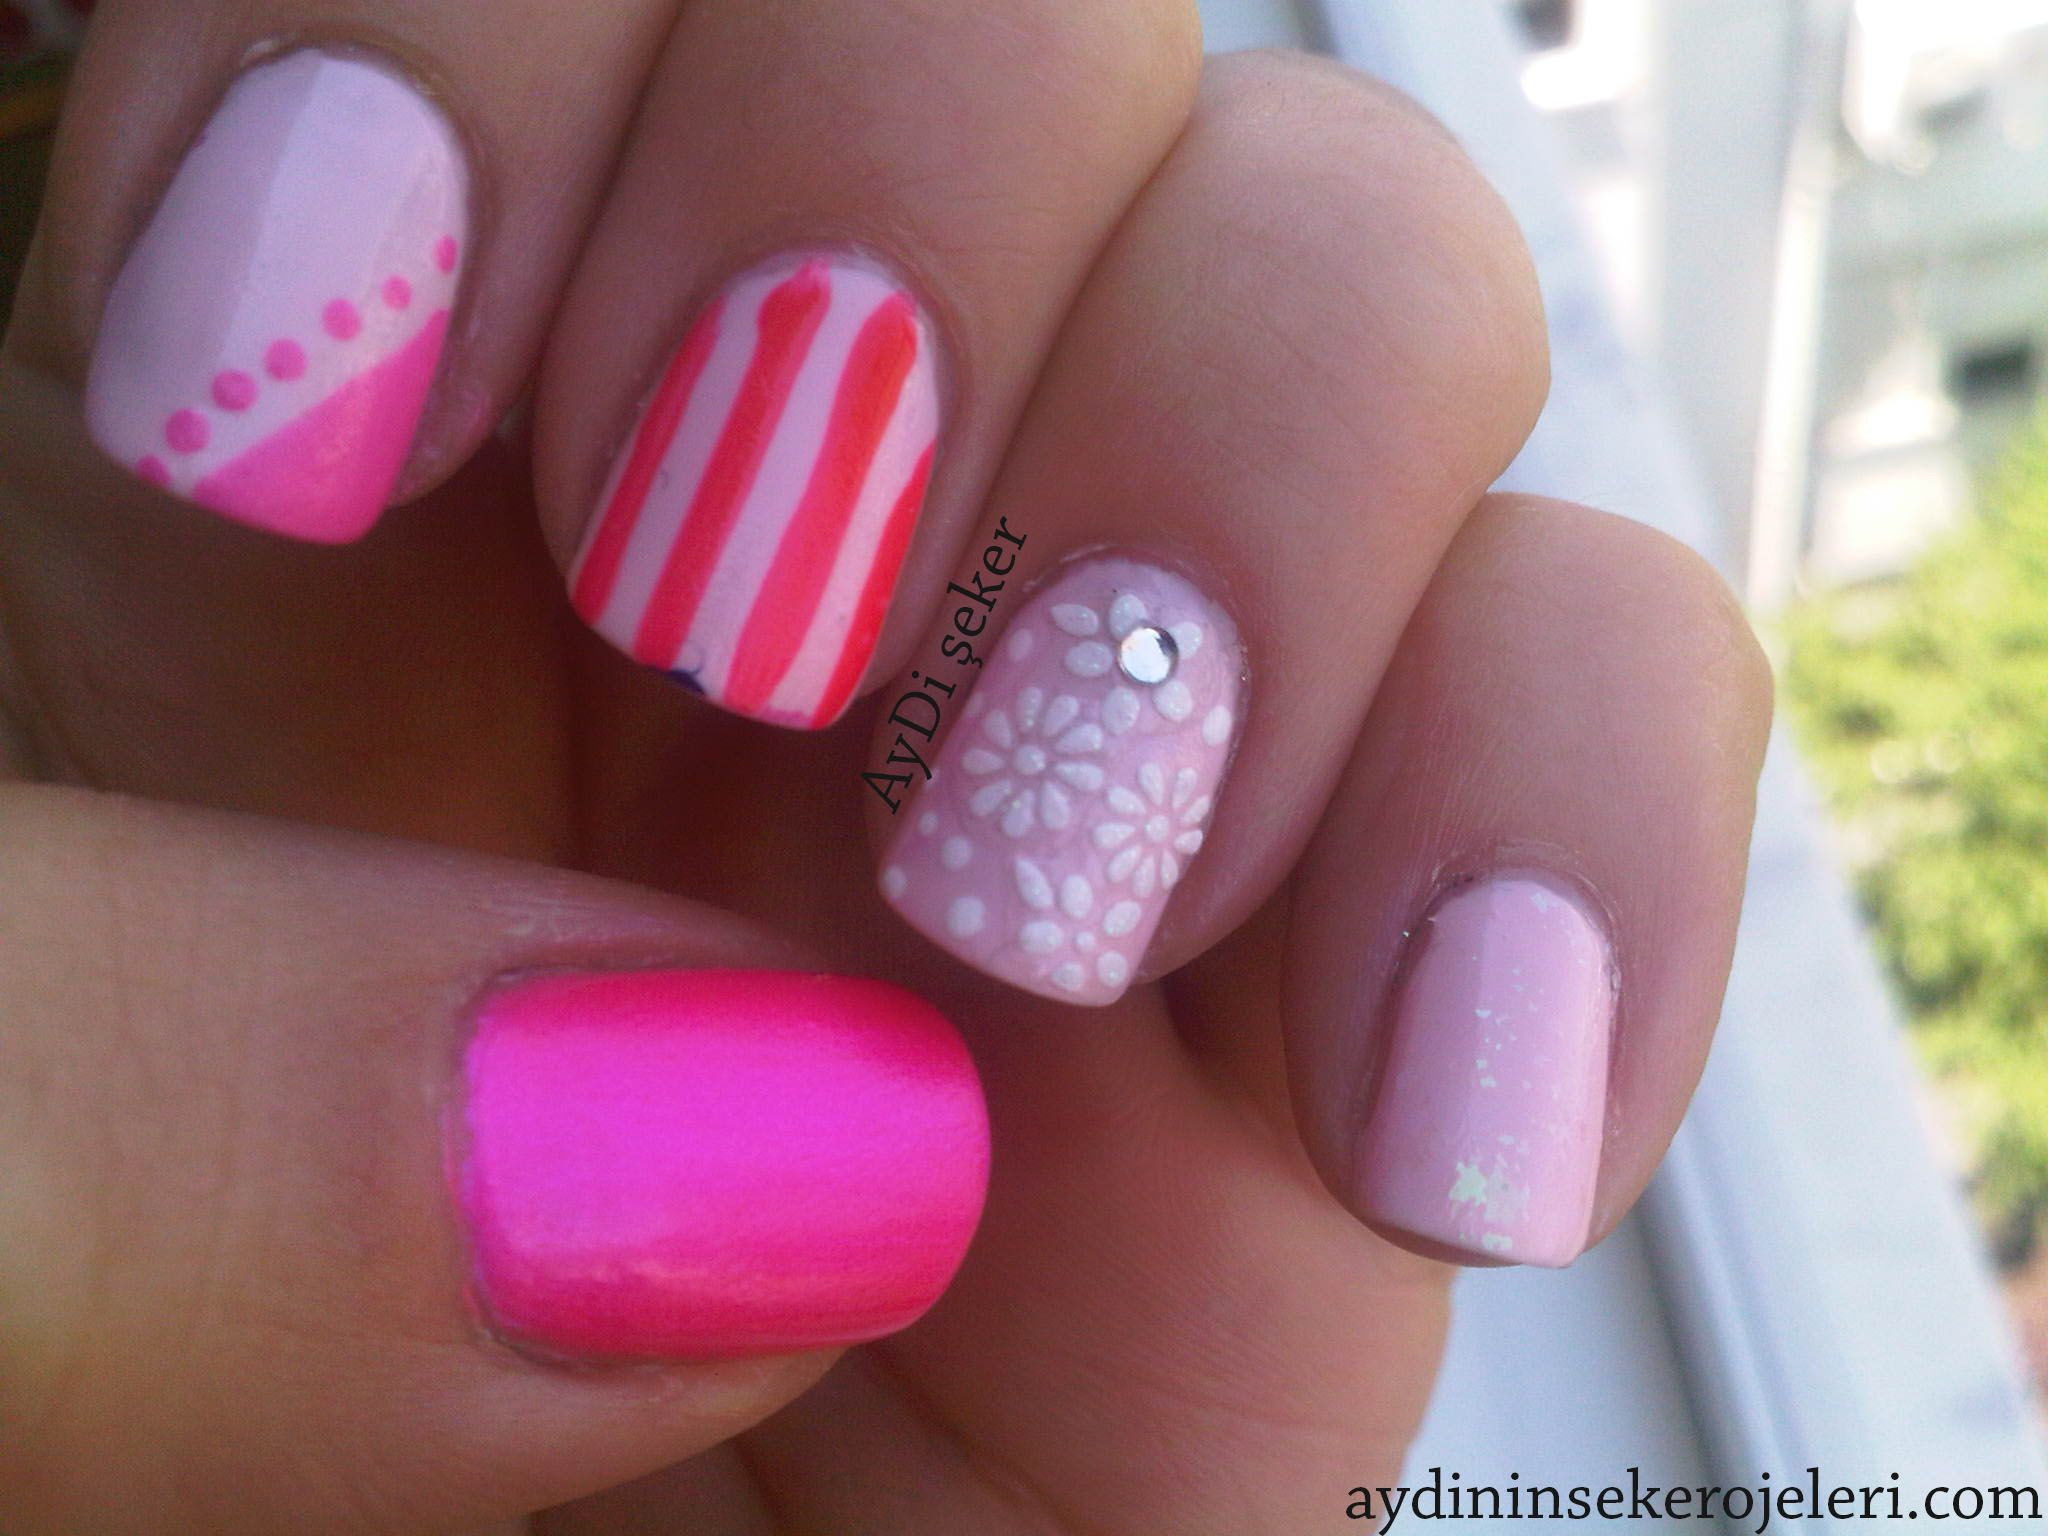 17 Best images about Nails on Pinterest | Cool nail art, Leopard ...